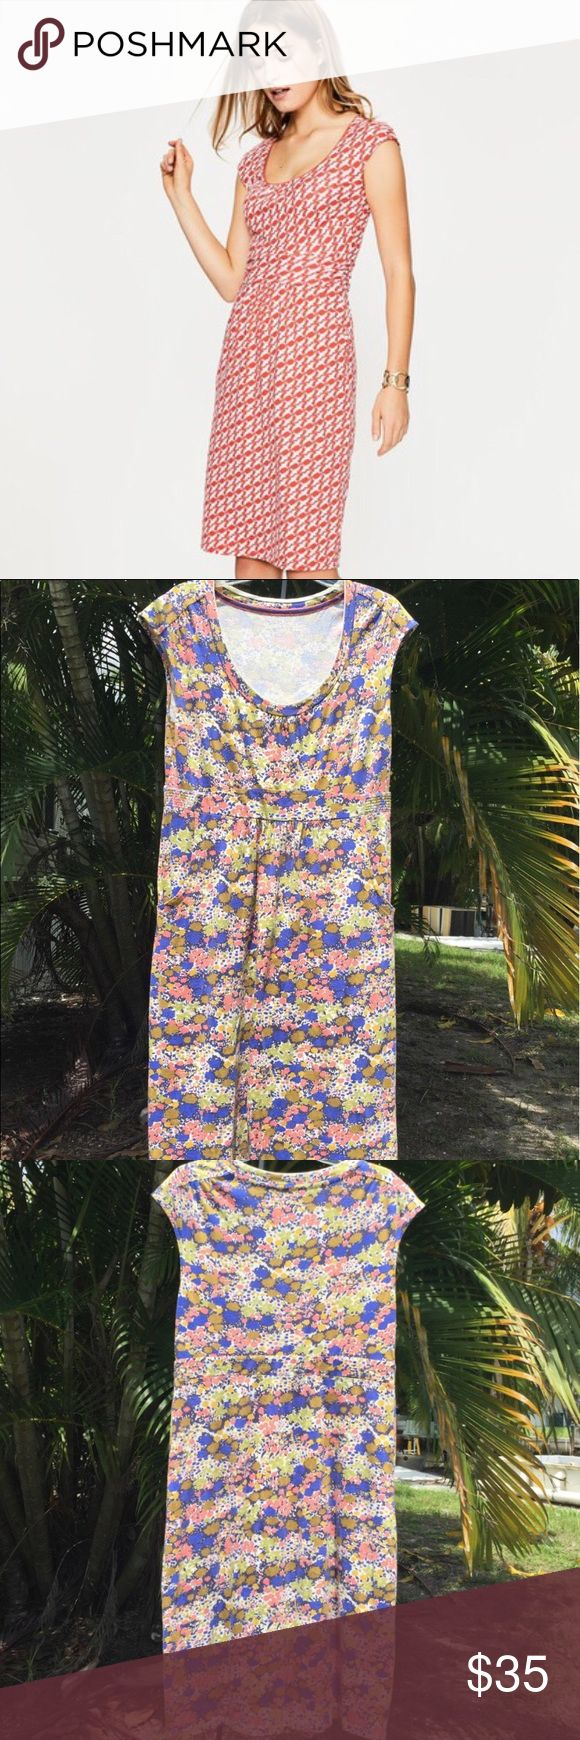 Boden abstract floral Margot jersey dress 14 NWOT Boden abstract floral Margot jersey dress 14 Boden Dresses Midi